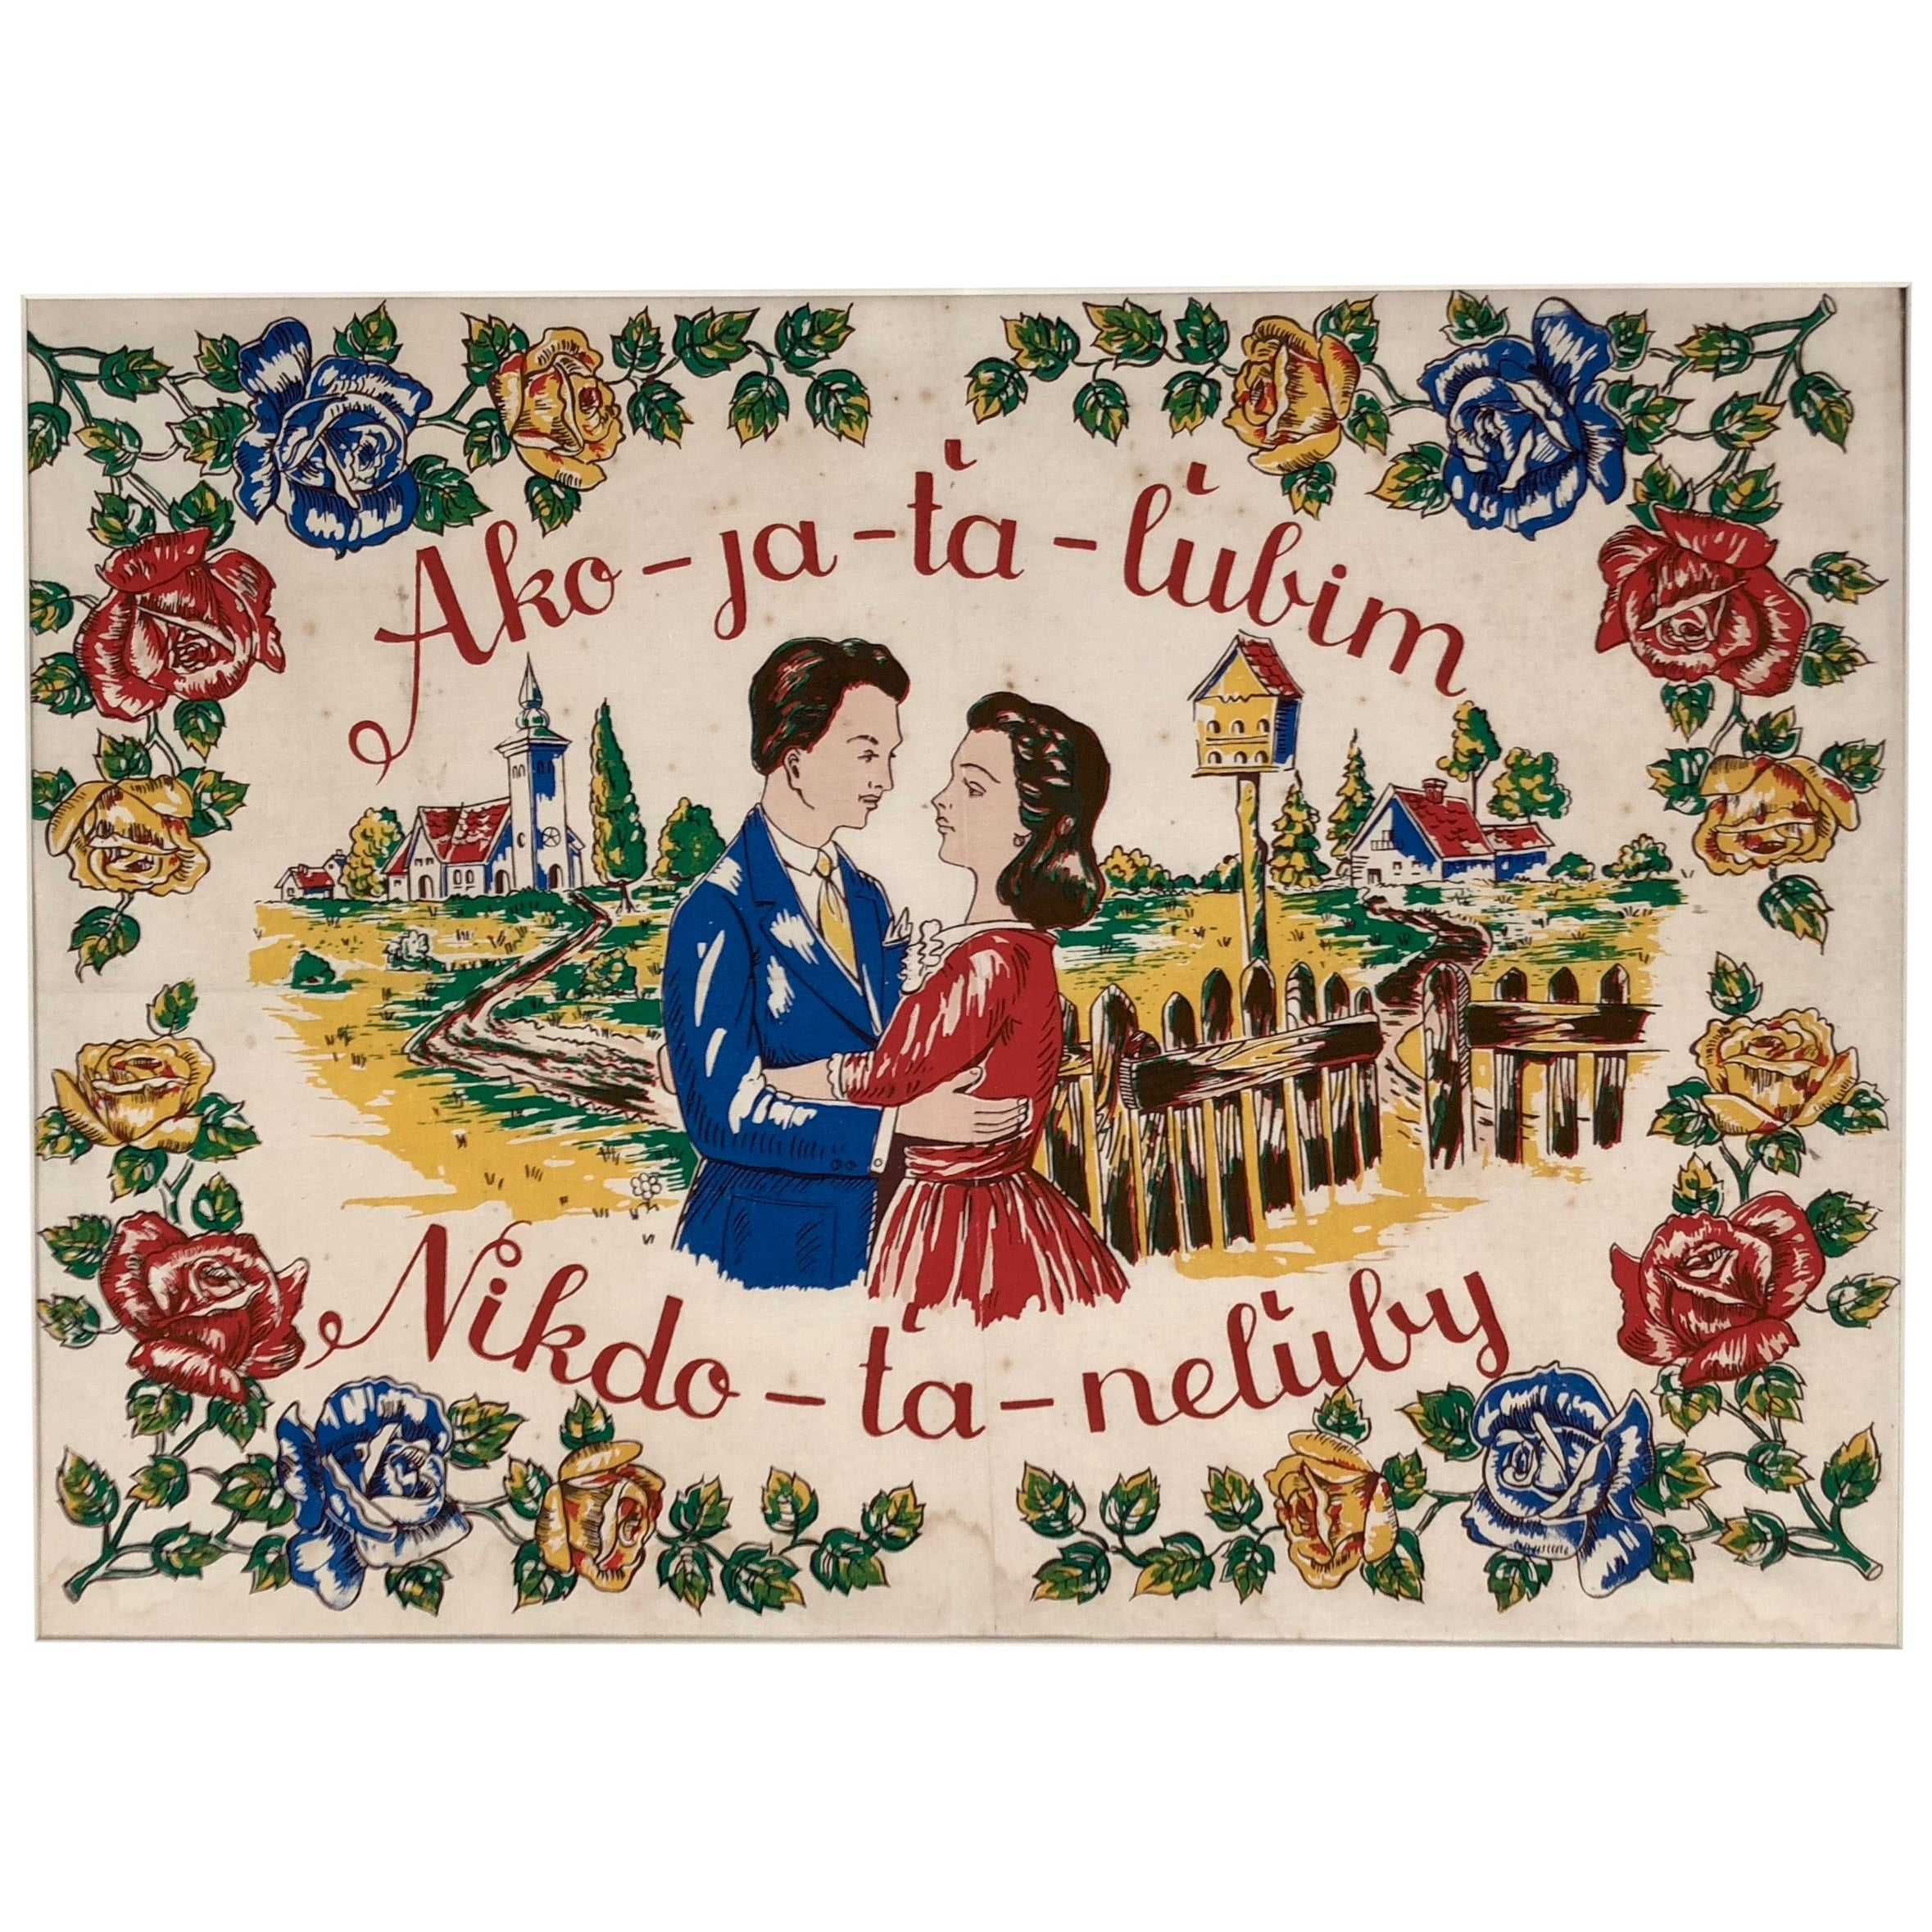 1940s Hand Colored Block Print on Textile